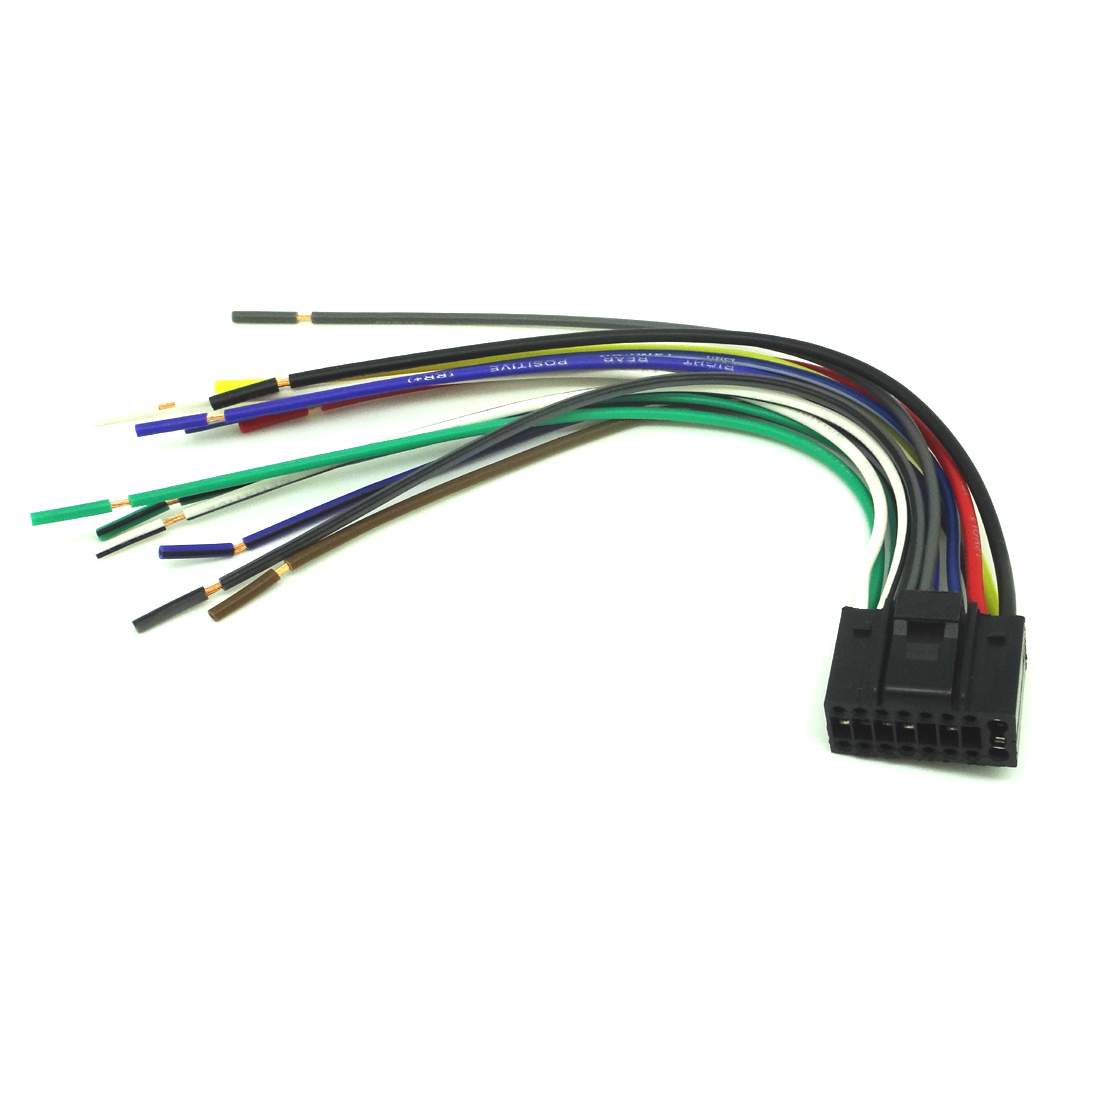 Player 16 Pin Radio Car Audio Stereo Wire Harness For Kenwood Kdc115s Kdc: Kenwood Car Audio Wire Harness At Executivepassage.co